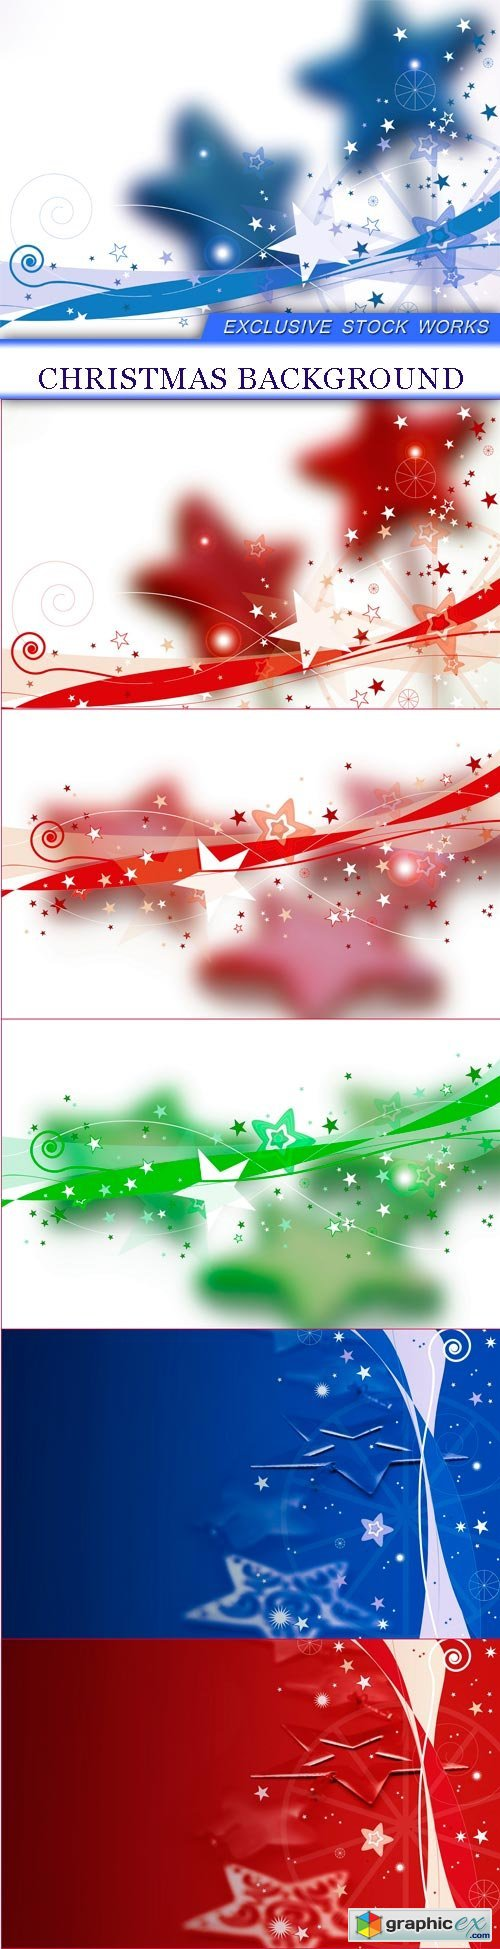 Christmas background 6X JPEG